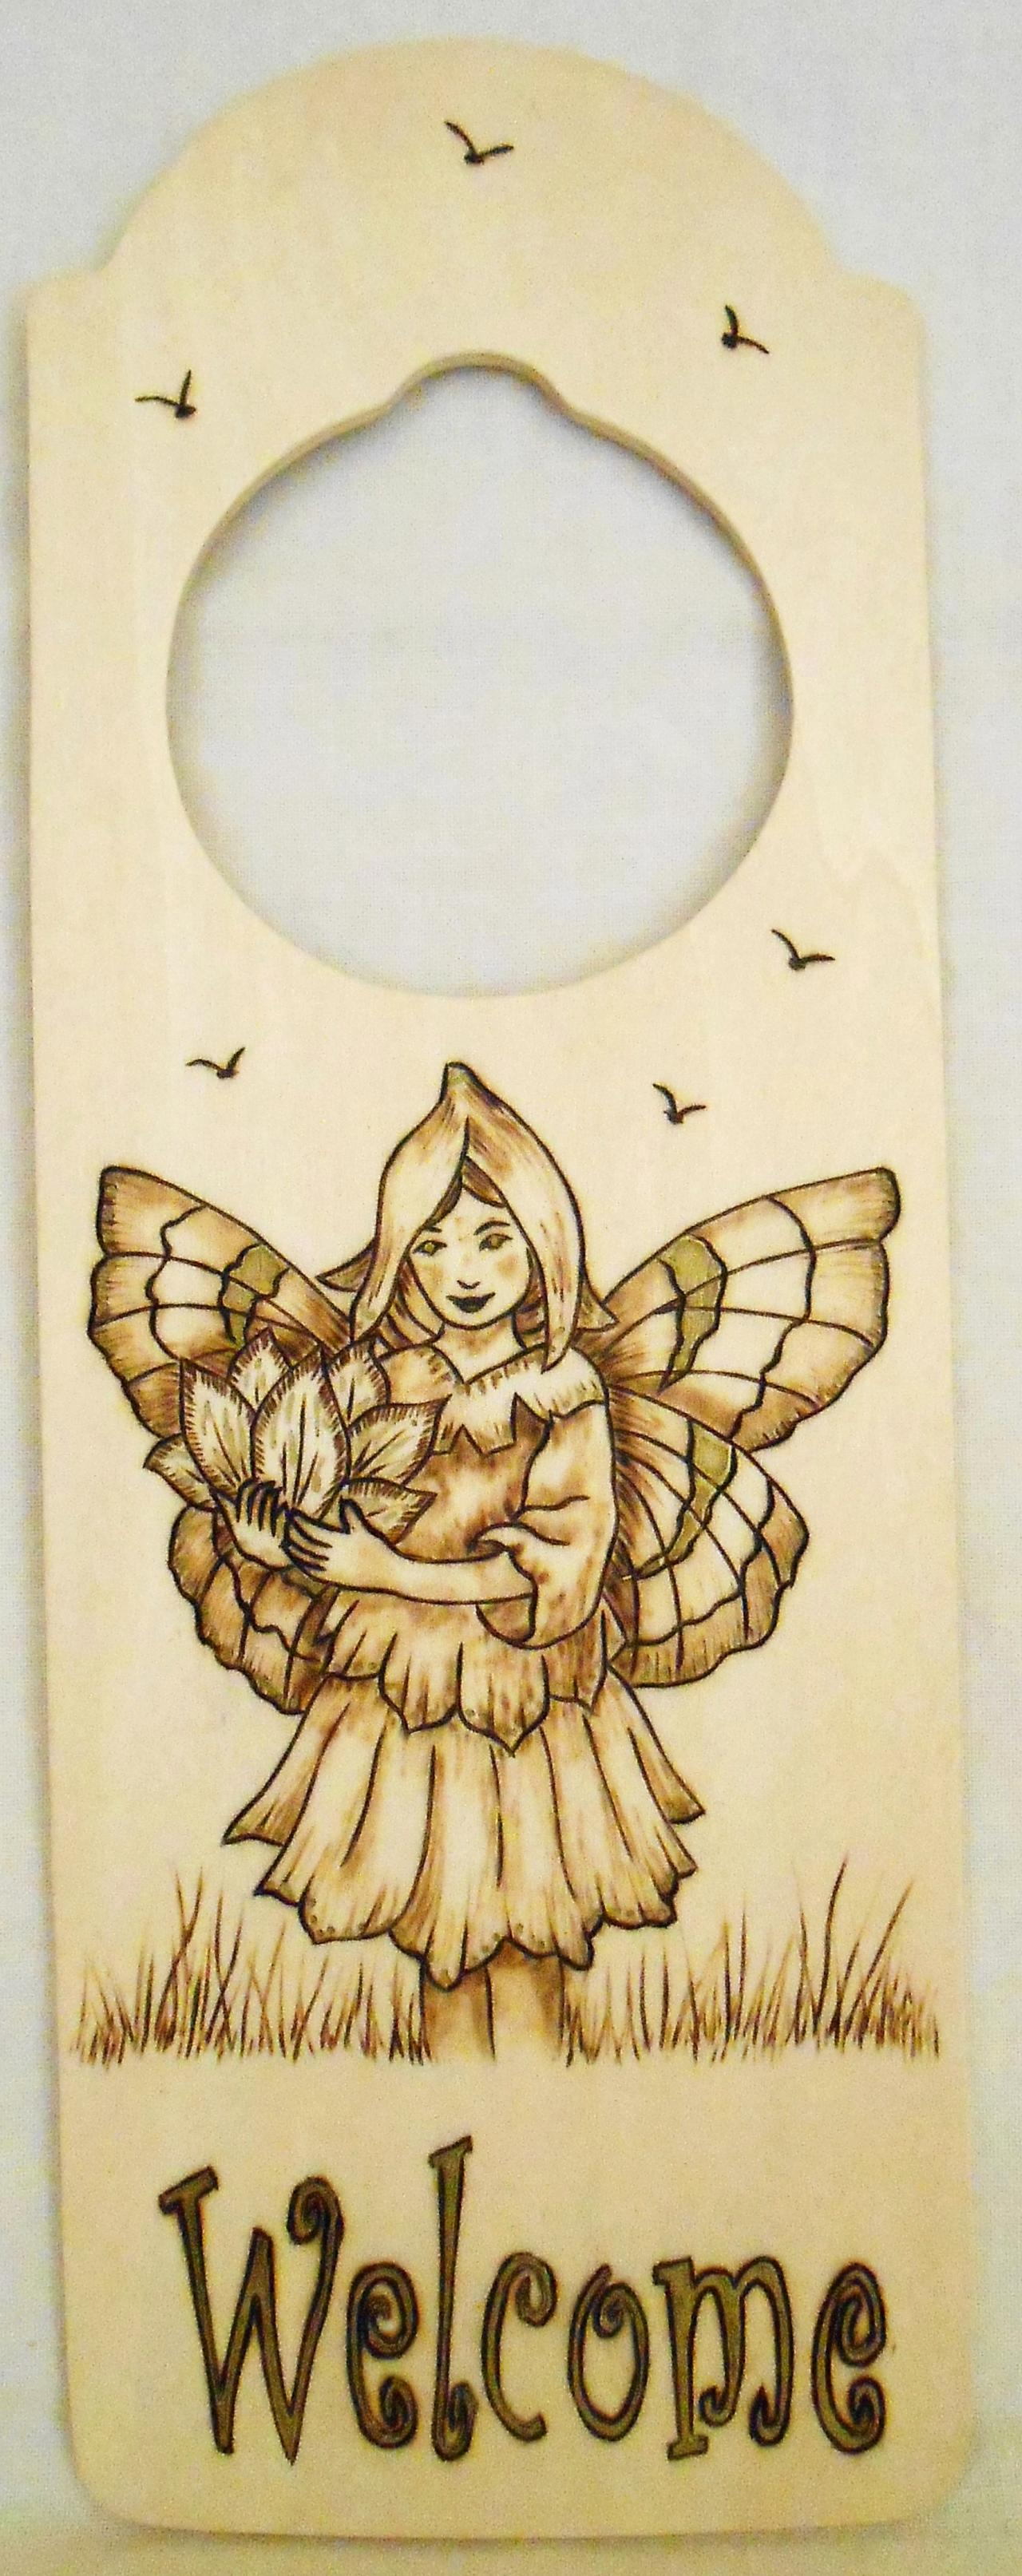 COUSINS ORIGINALS offers PYROGRAPHY, i.e. Pyro-engraved (woodburned ...